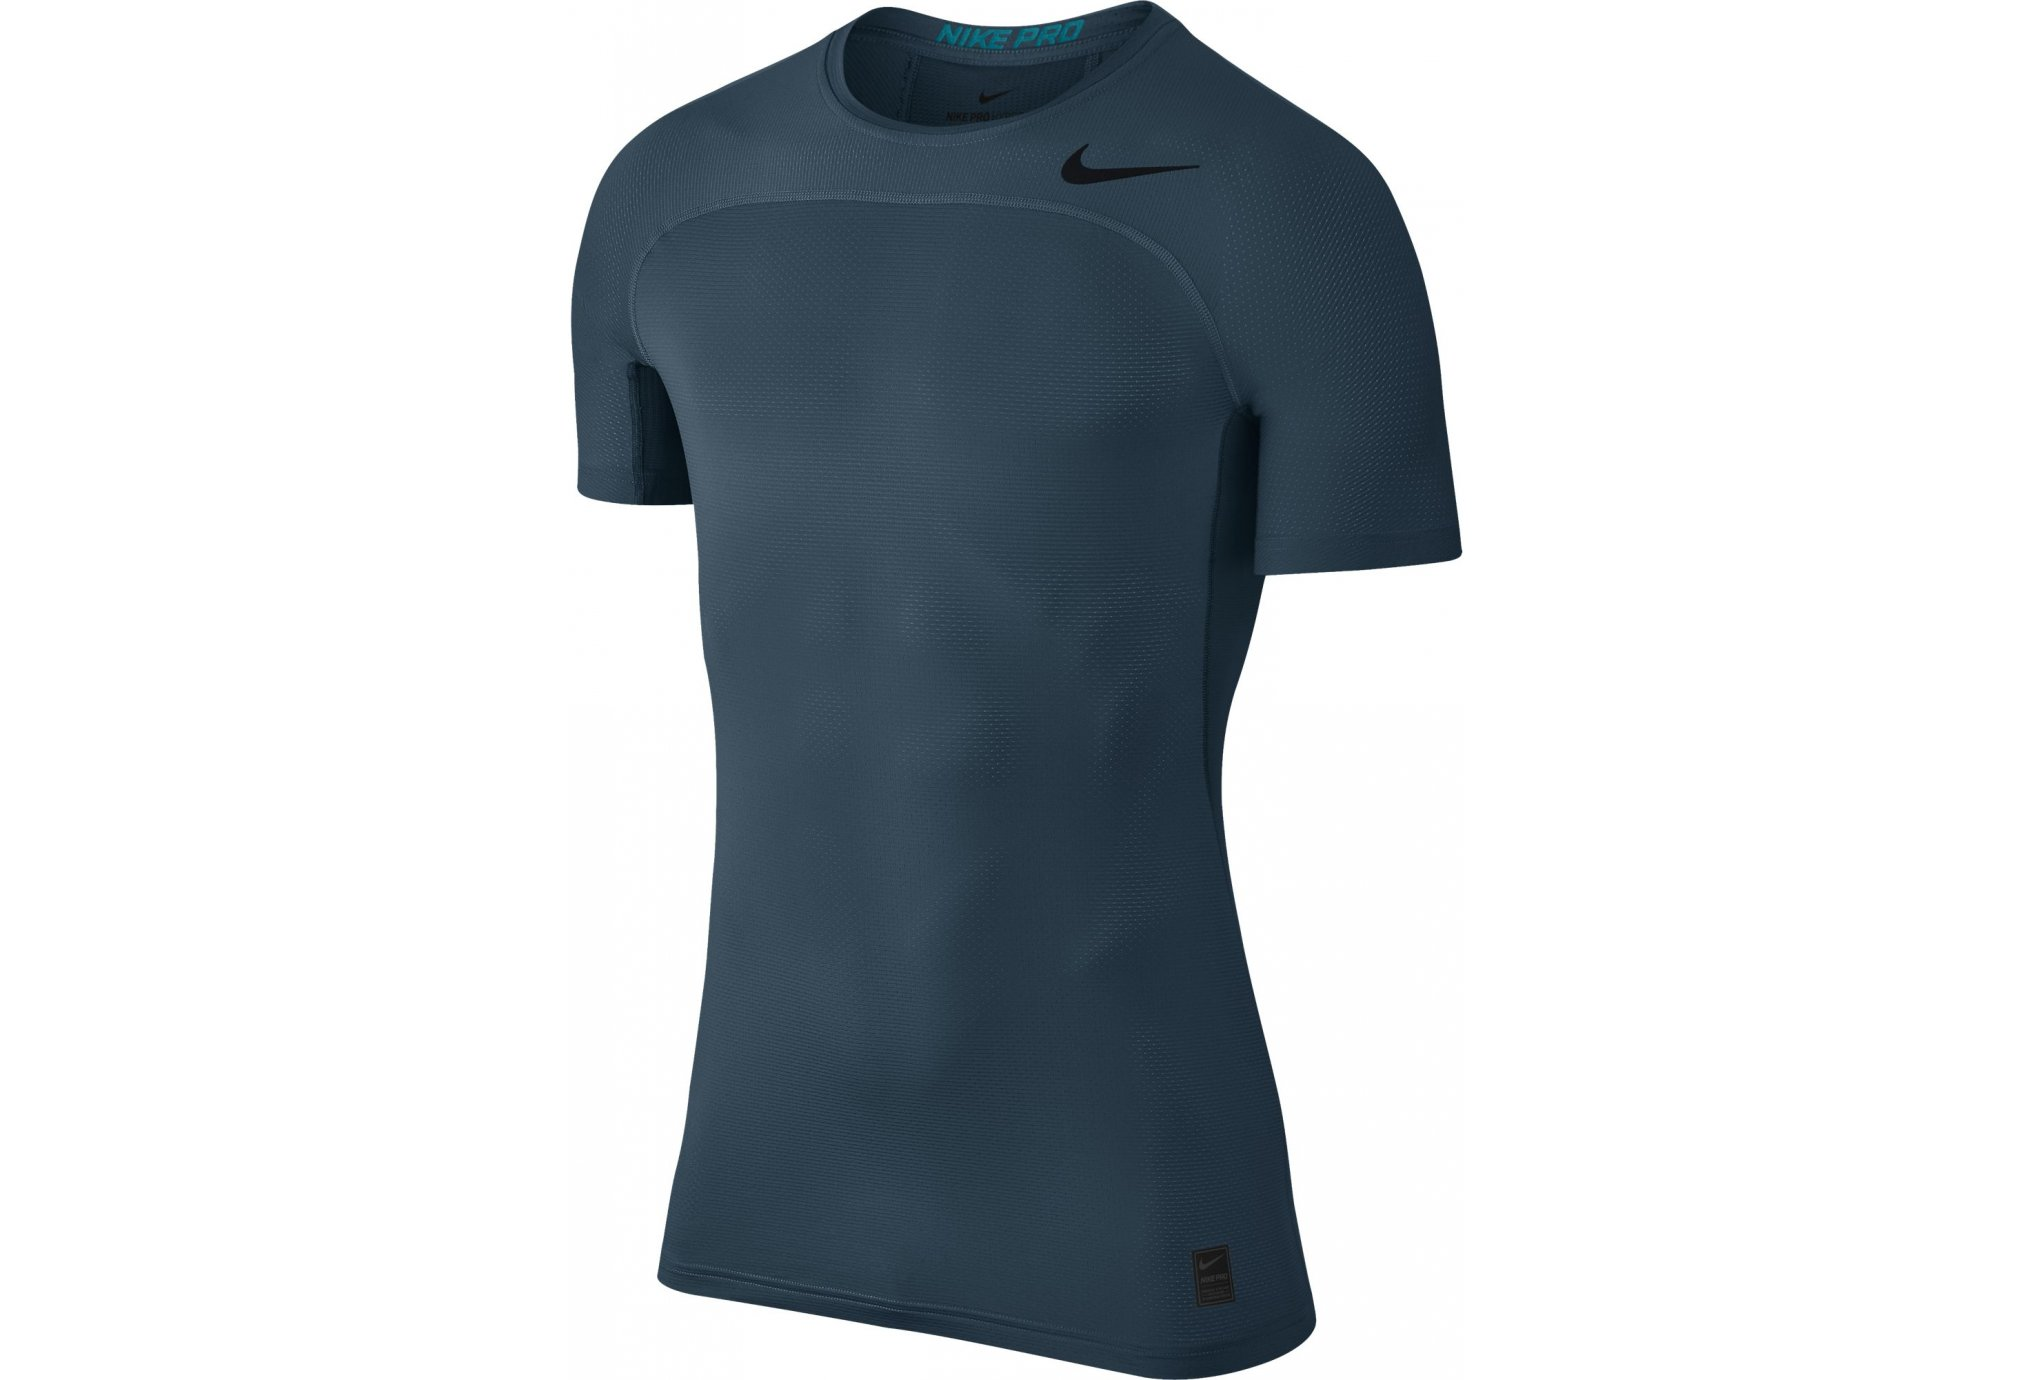 Trail Session - Nike Pro Hypercool Fitted M vêtement running homme 720015a6356a